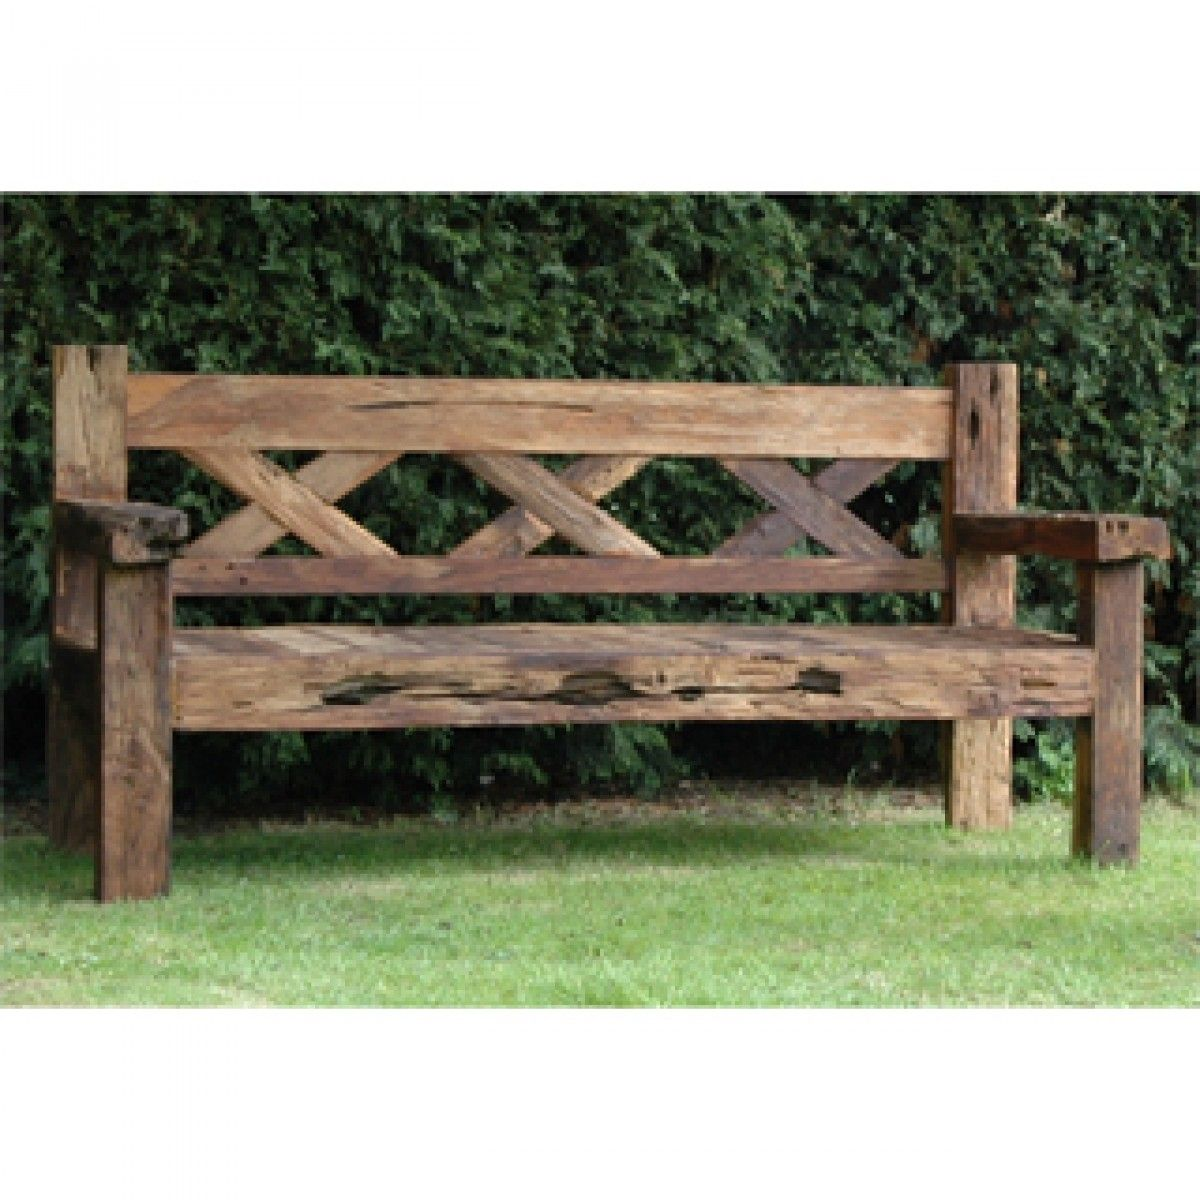 rustic wooden outdoor furniture. Reclaimed Teak Rustic Bench Outdoor The Number One \u2013 All About Wooden Furniture A